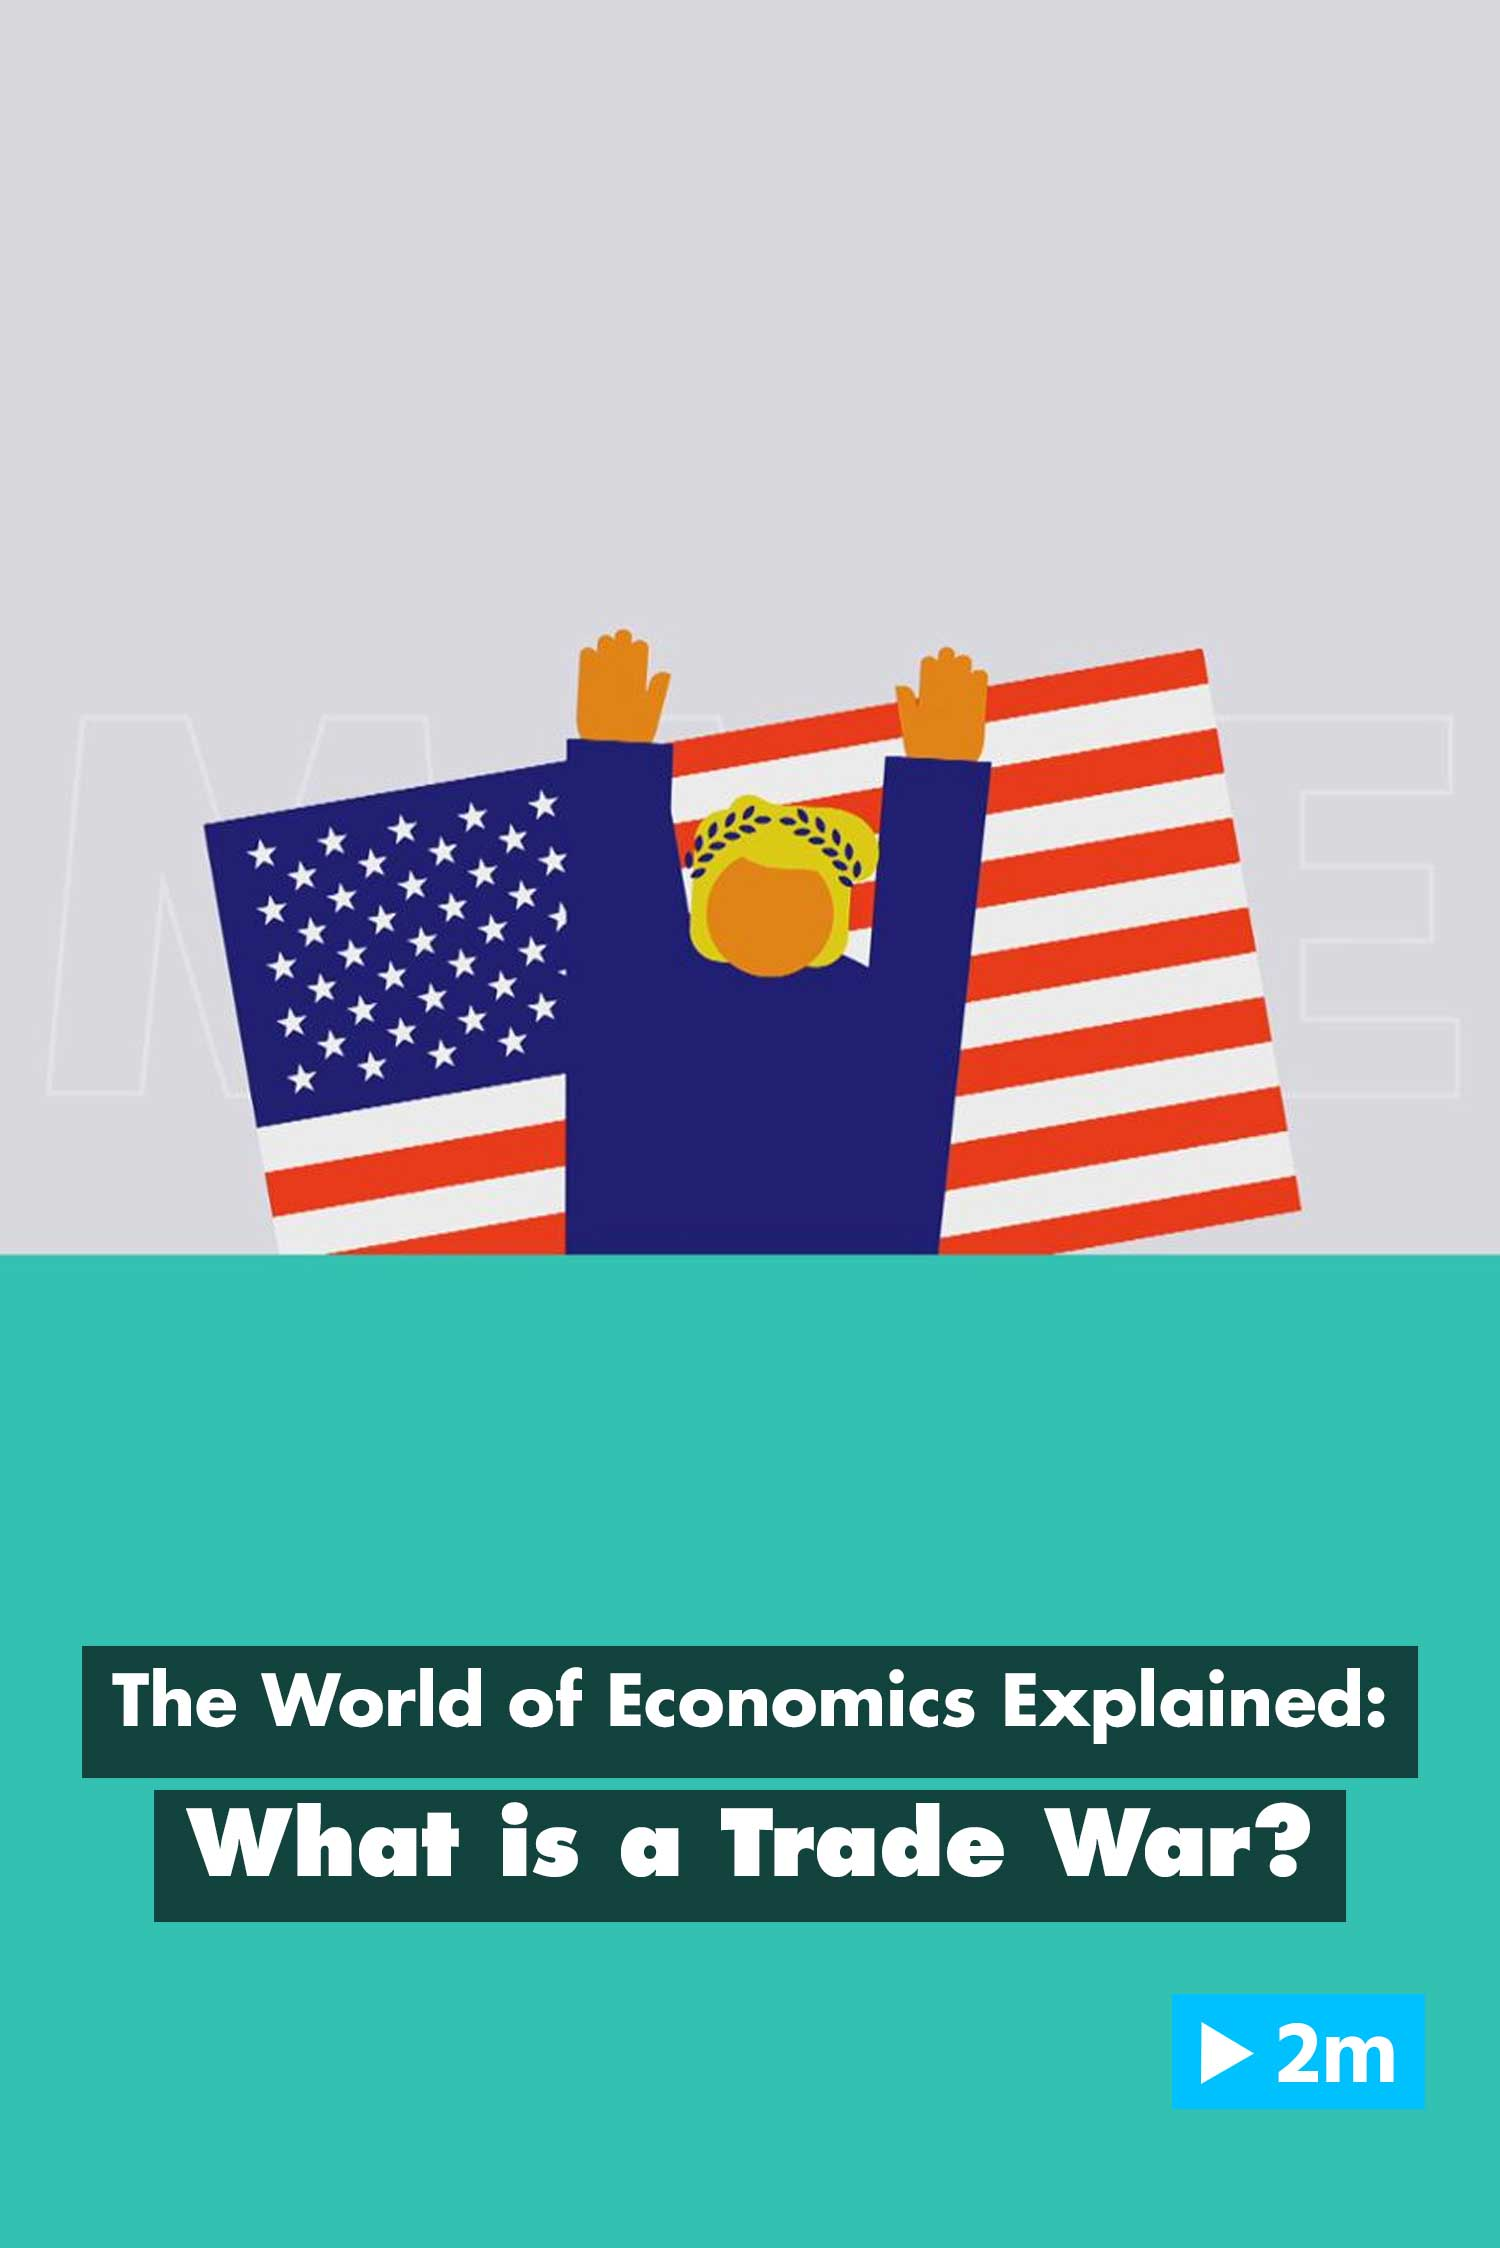 The World of Economics Explained: What is a trade war?